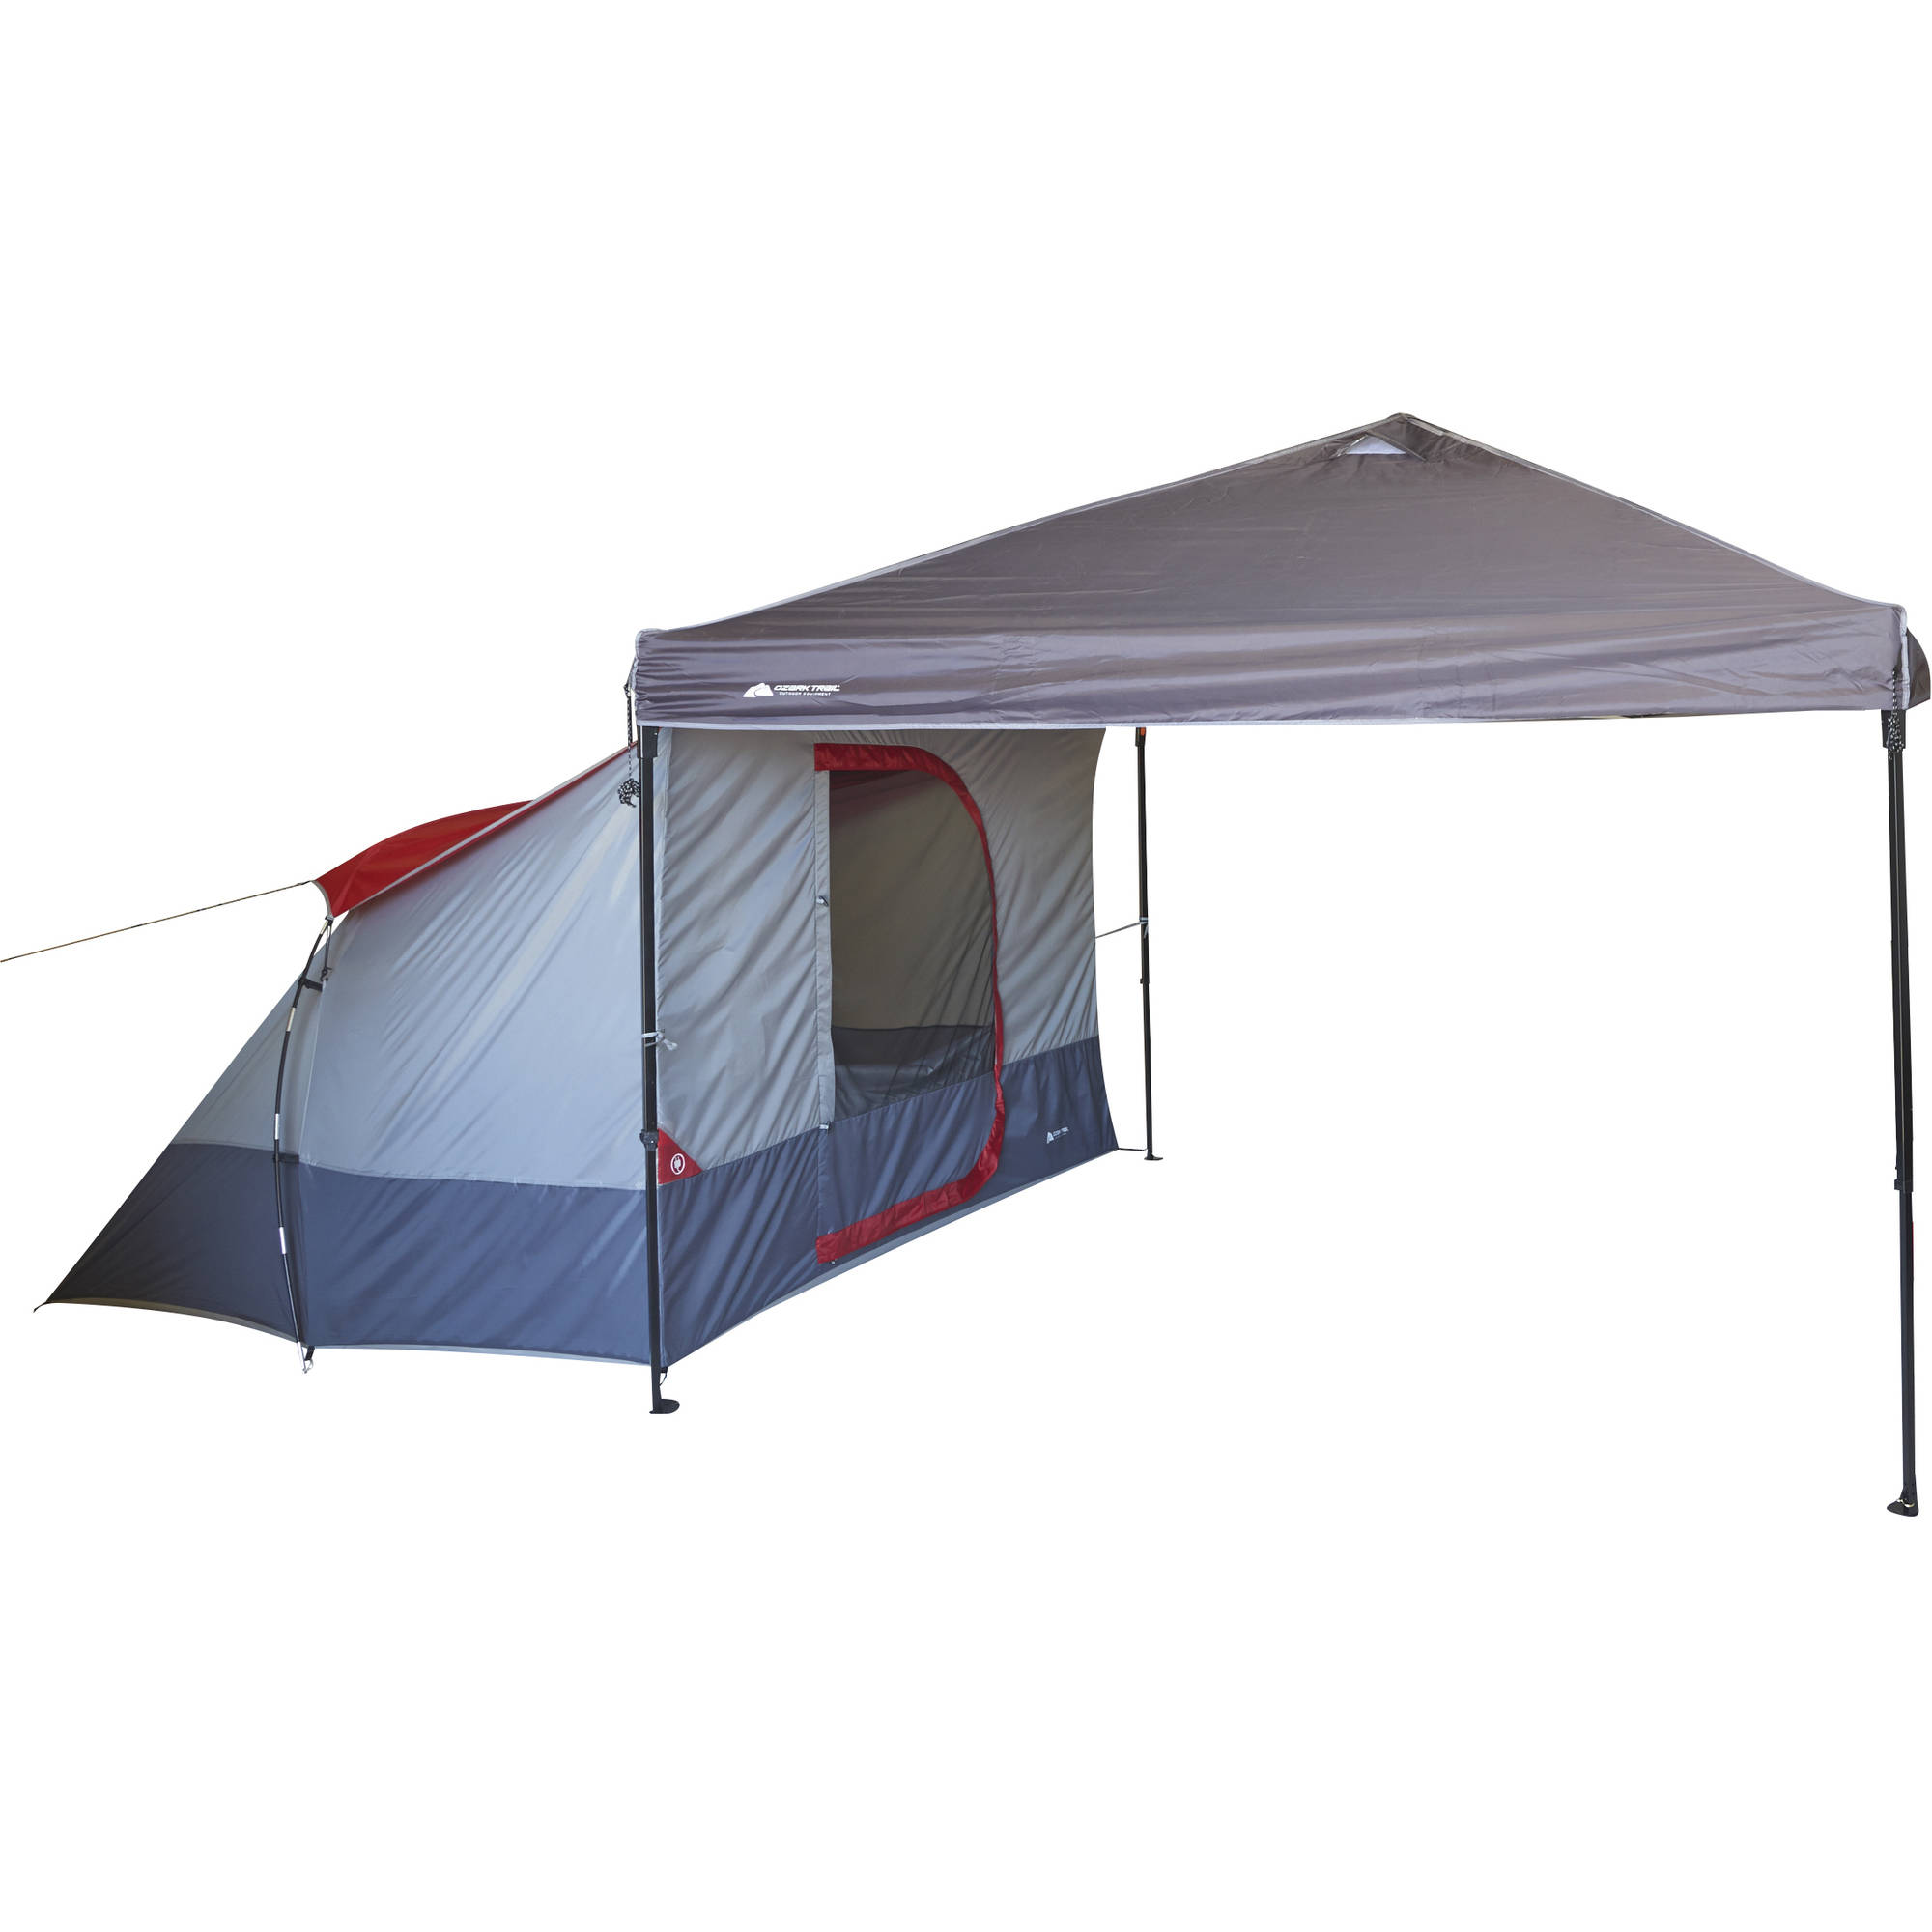 Ozark Trail 4-Person ConnecTent for Canopy  sc 1 st  Walmart & Ozark Trail Tents - Walmart.com